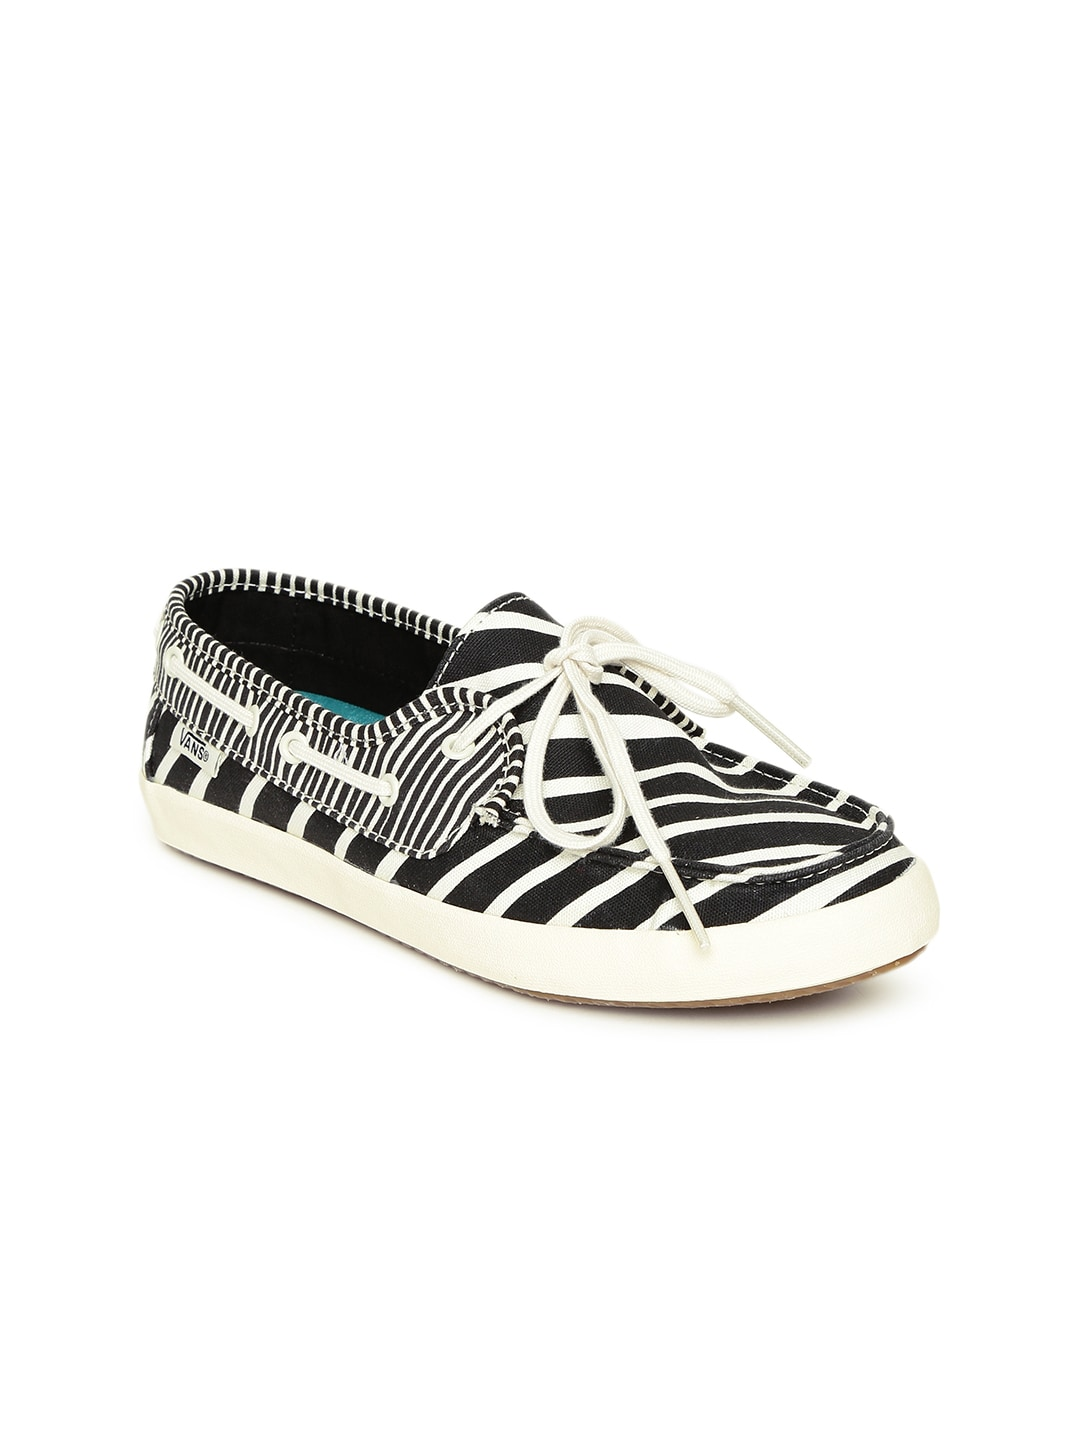 ee31d65c0529 Vans vn-0se9gji Women Black And White Zebra Print Chauffette Boat Shoes-  Price in India